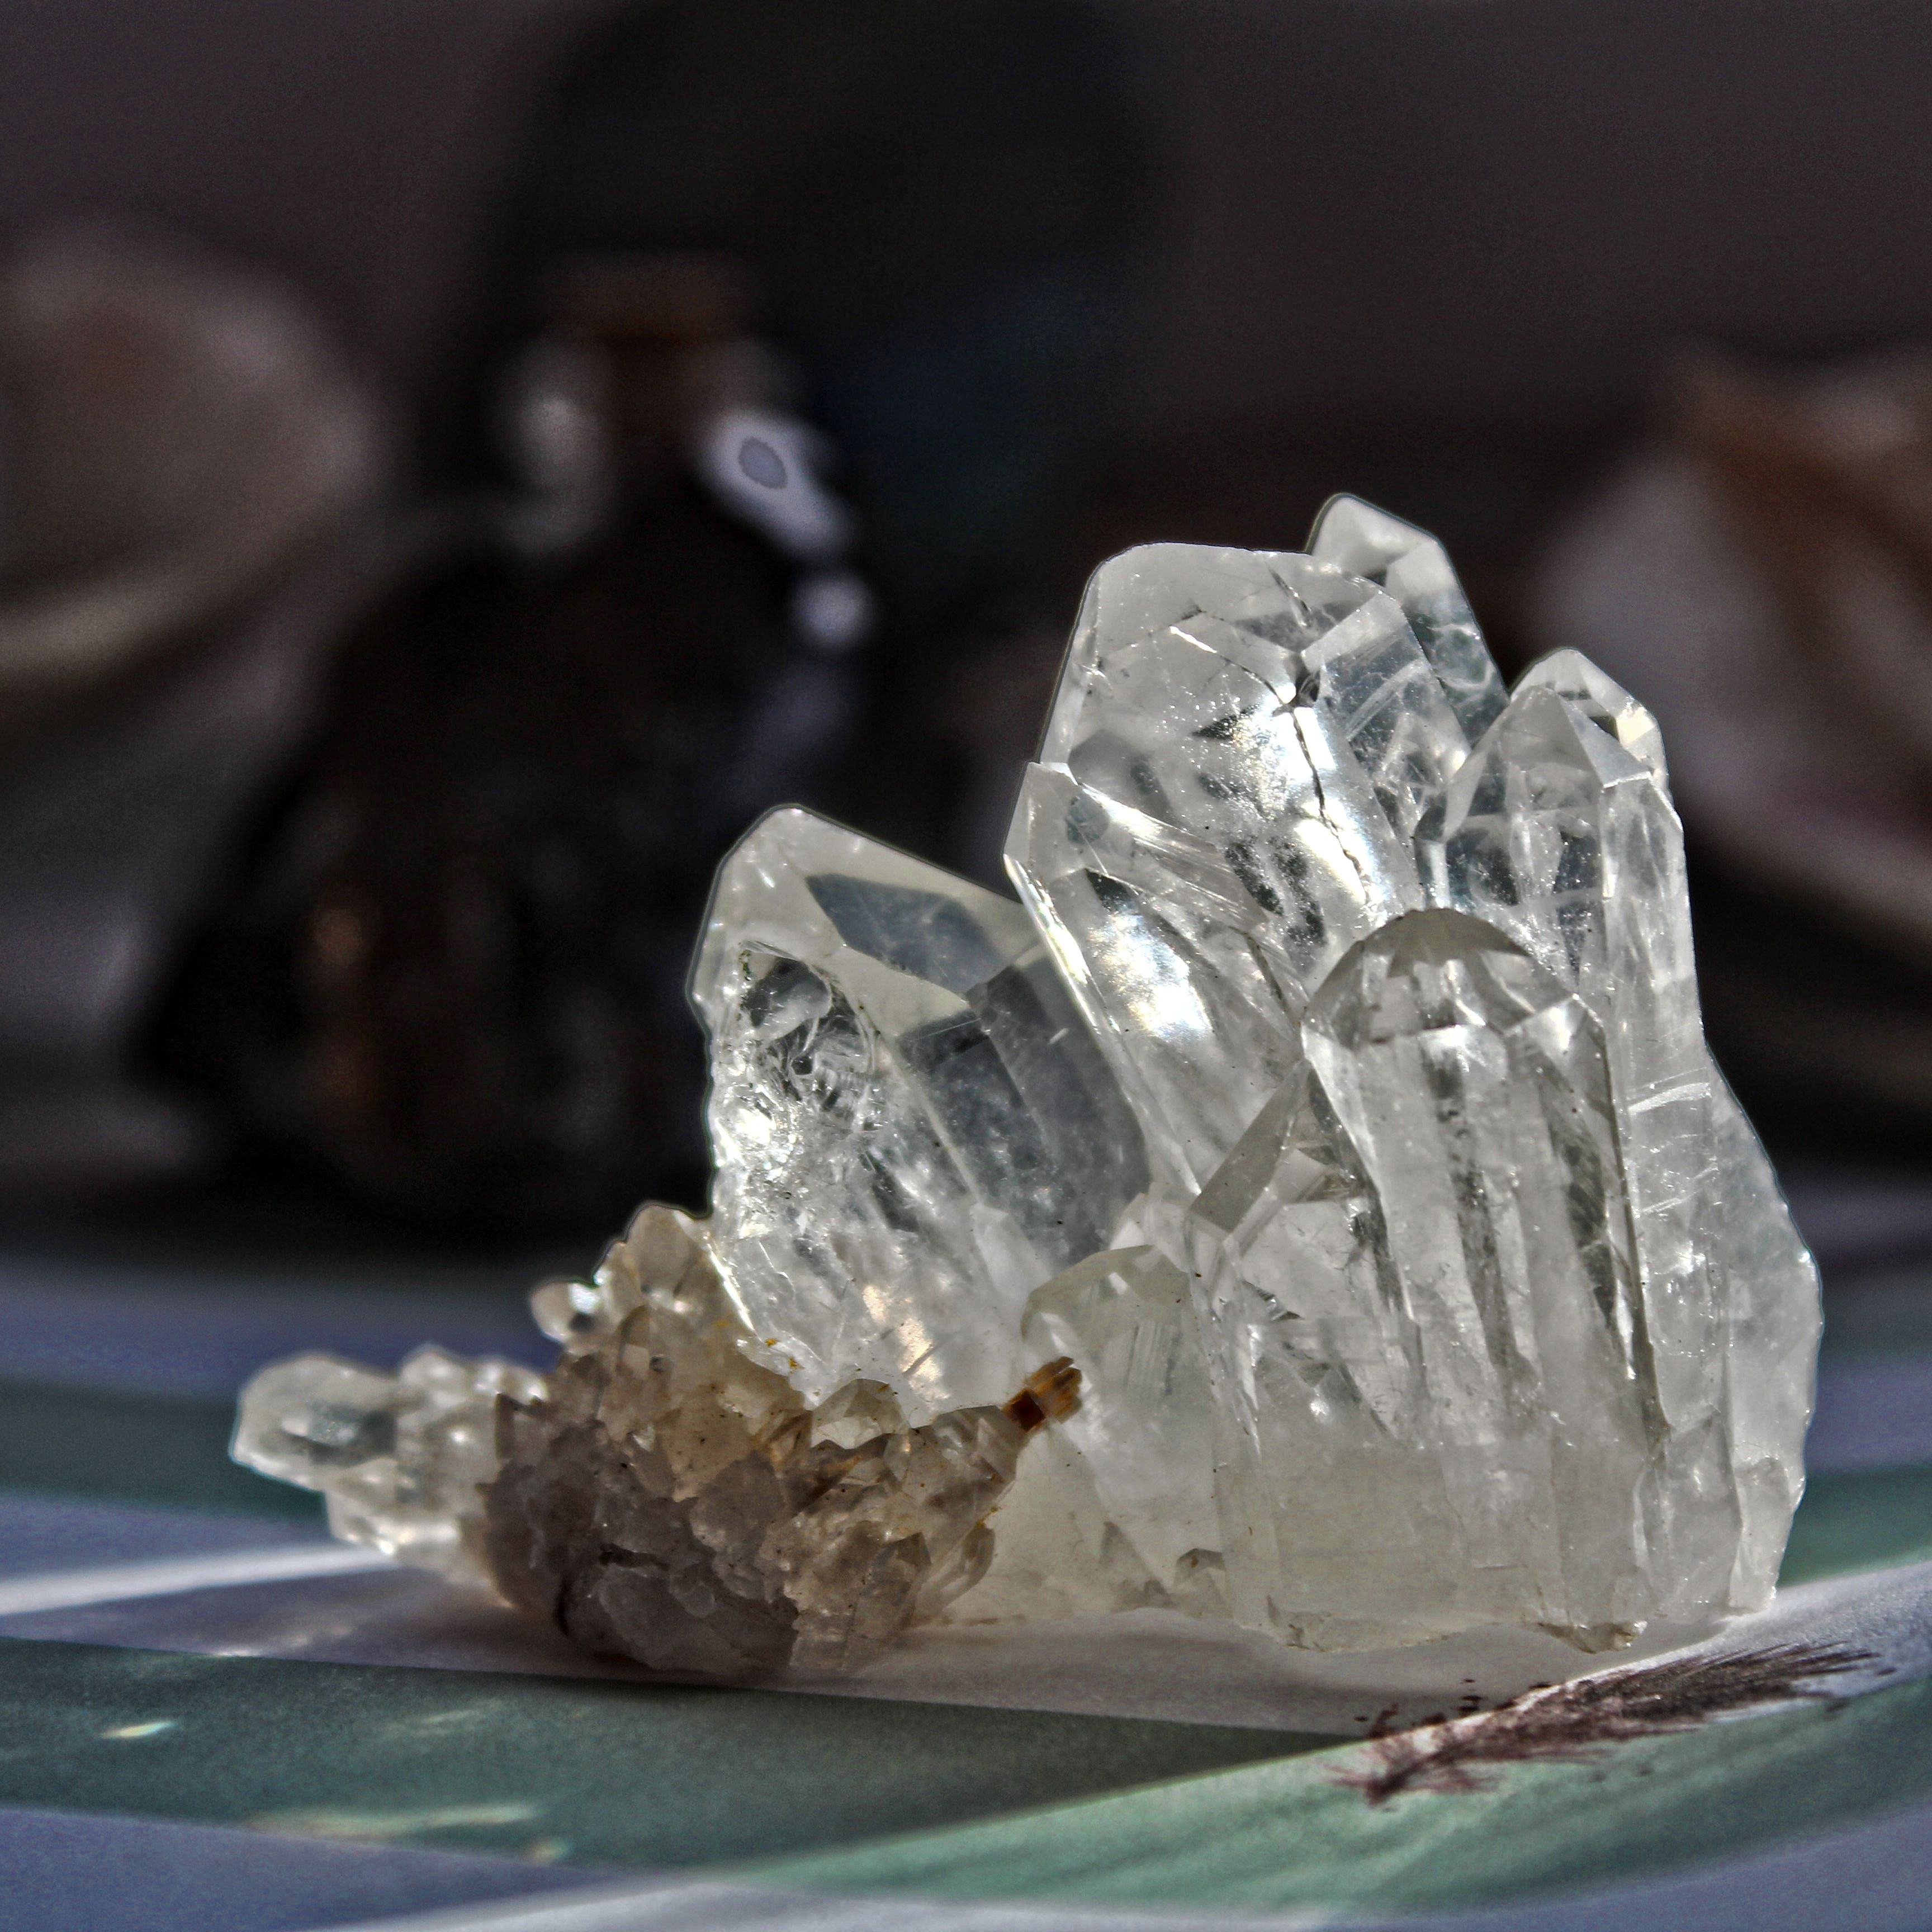 Pin by Spiritual Wake on crystals | Quartz cluster Stones ...